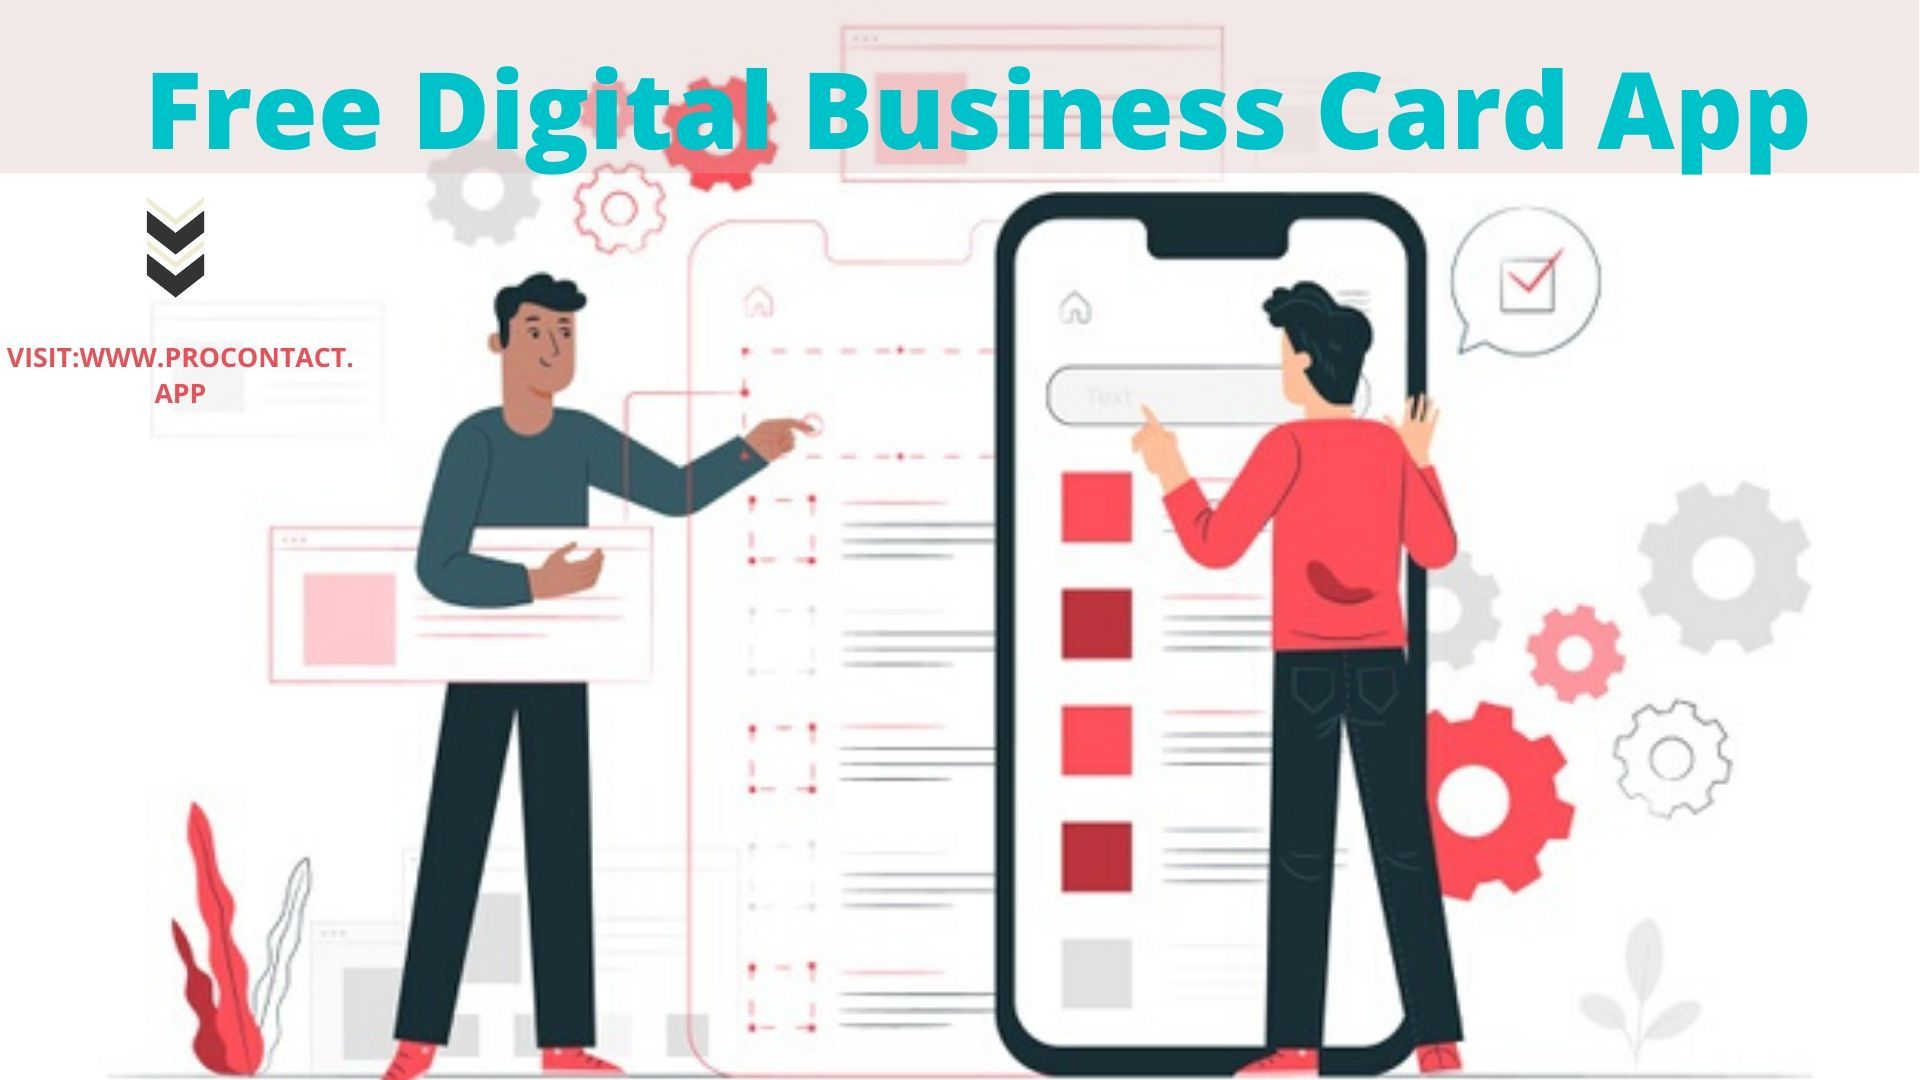 Download Procontact App Now And Create A Business Card For Your Employee Mobile Application Development App Development Digital Business Card